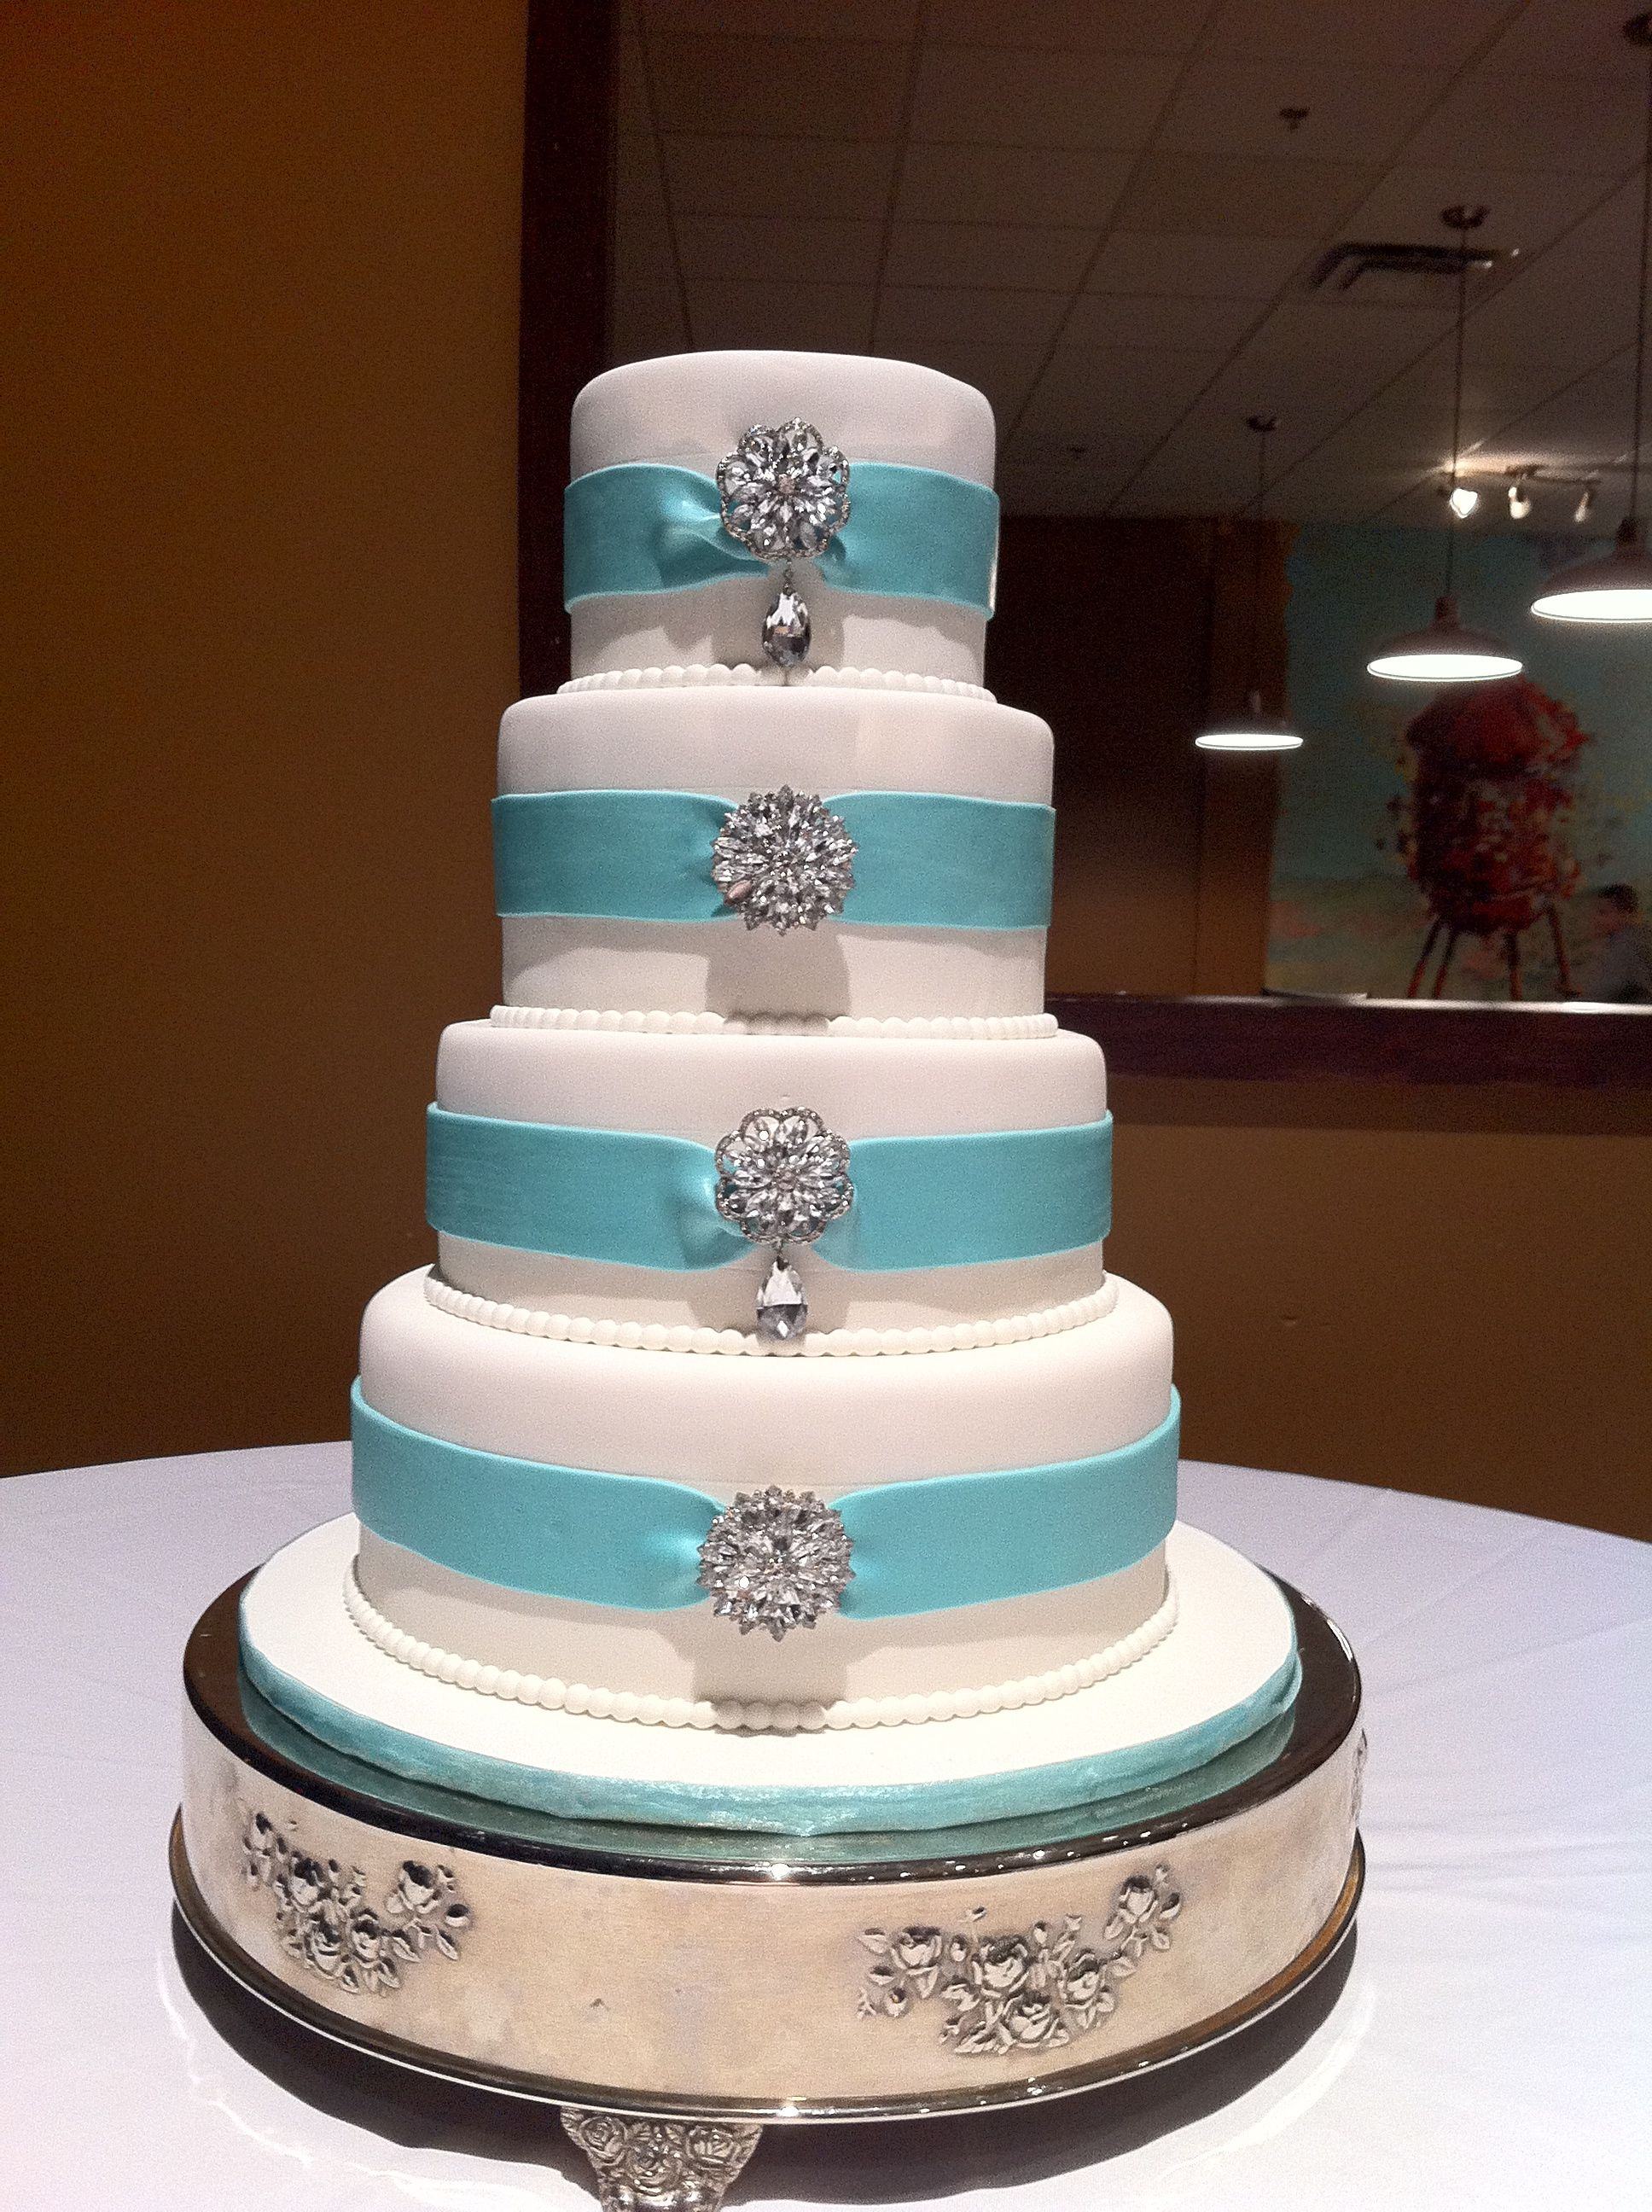 Tiffany Blue & Brooches Wedding Cake (original design by Jay Qualls) by Renay Zamora @ Sweetface Cakes, Nashville, TN.  Delivered to Sodium, Franklin, TN.